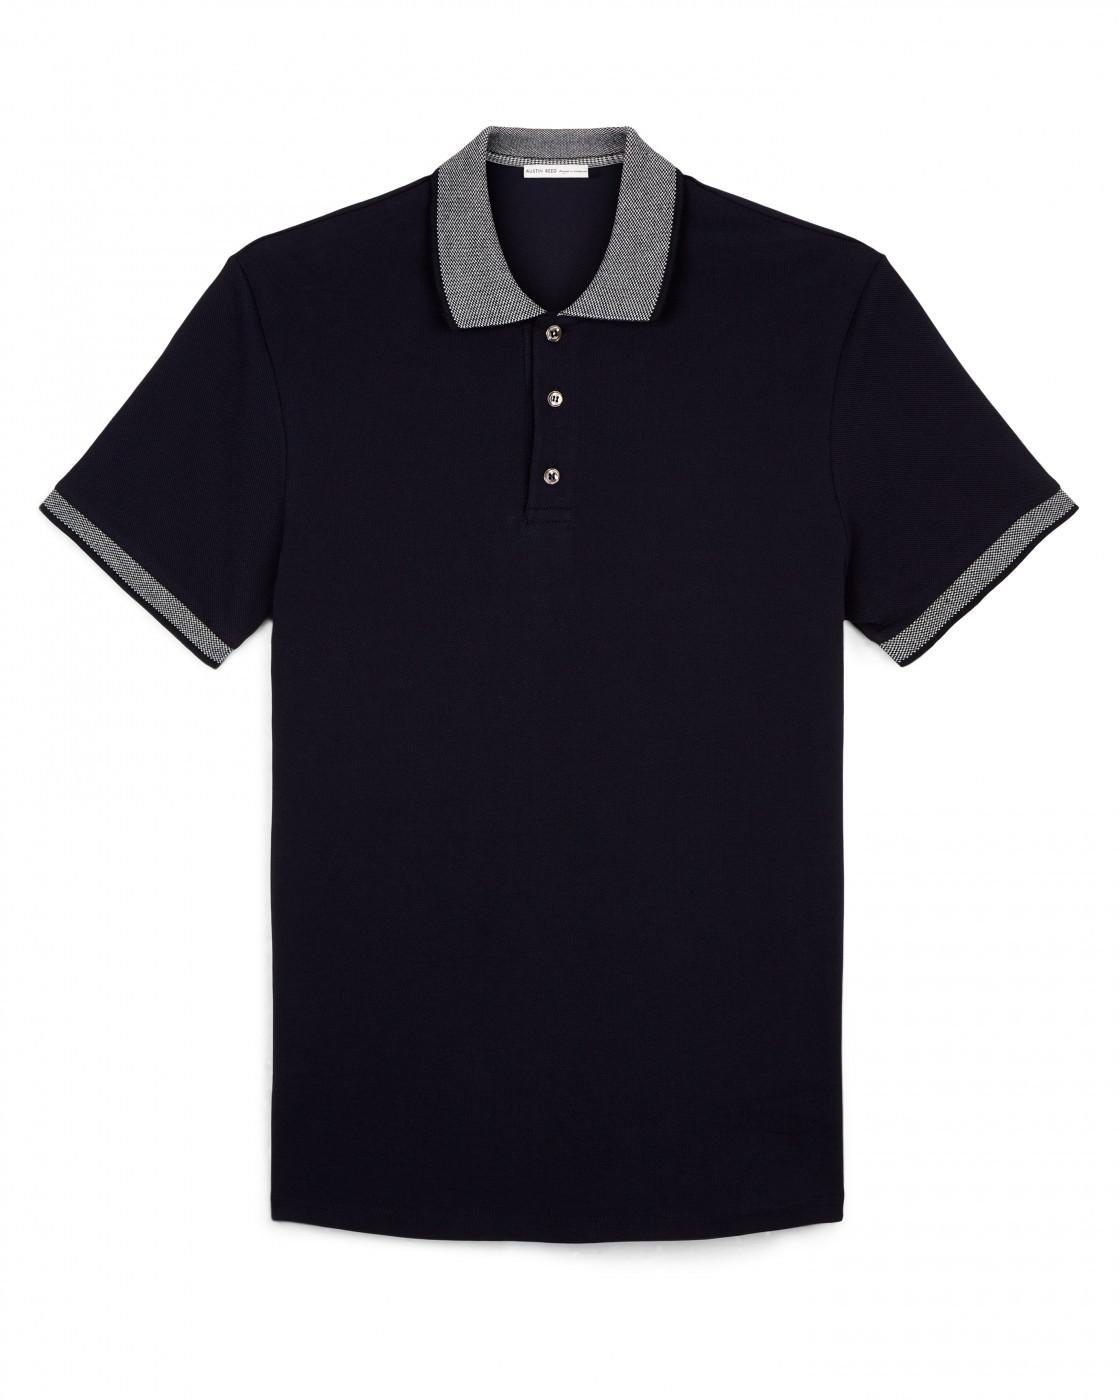 Plain Pique Polo By Austin Reed Thread